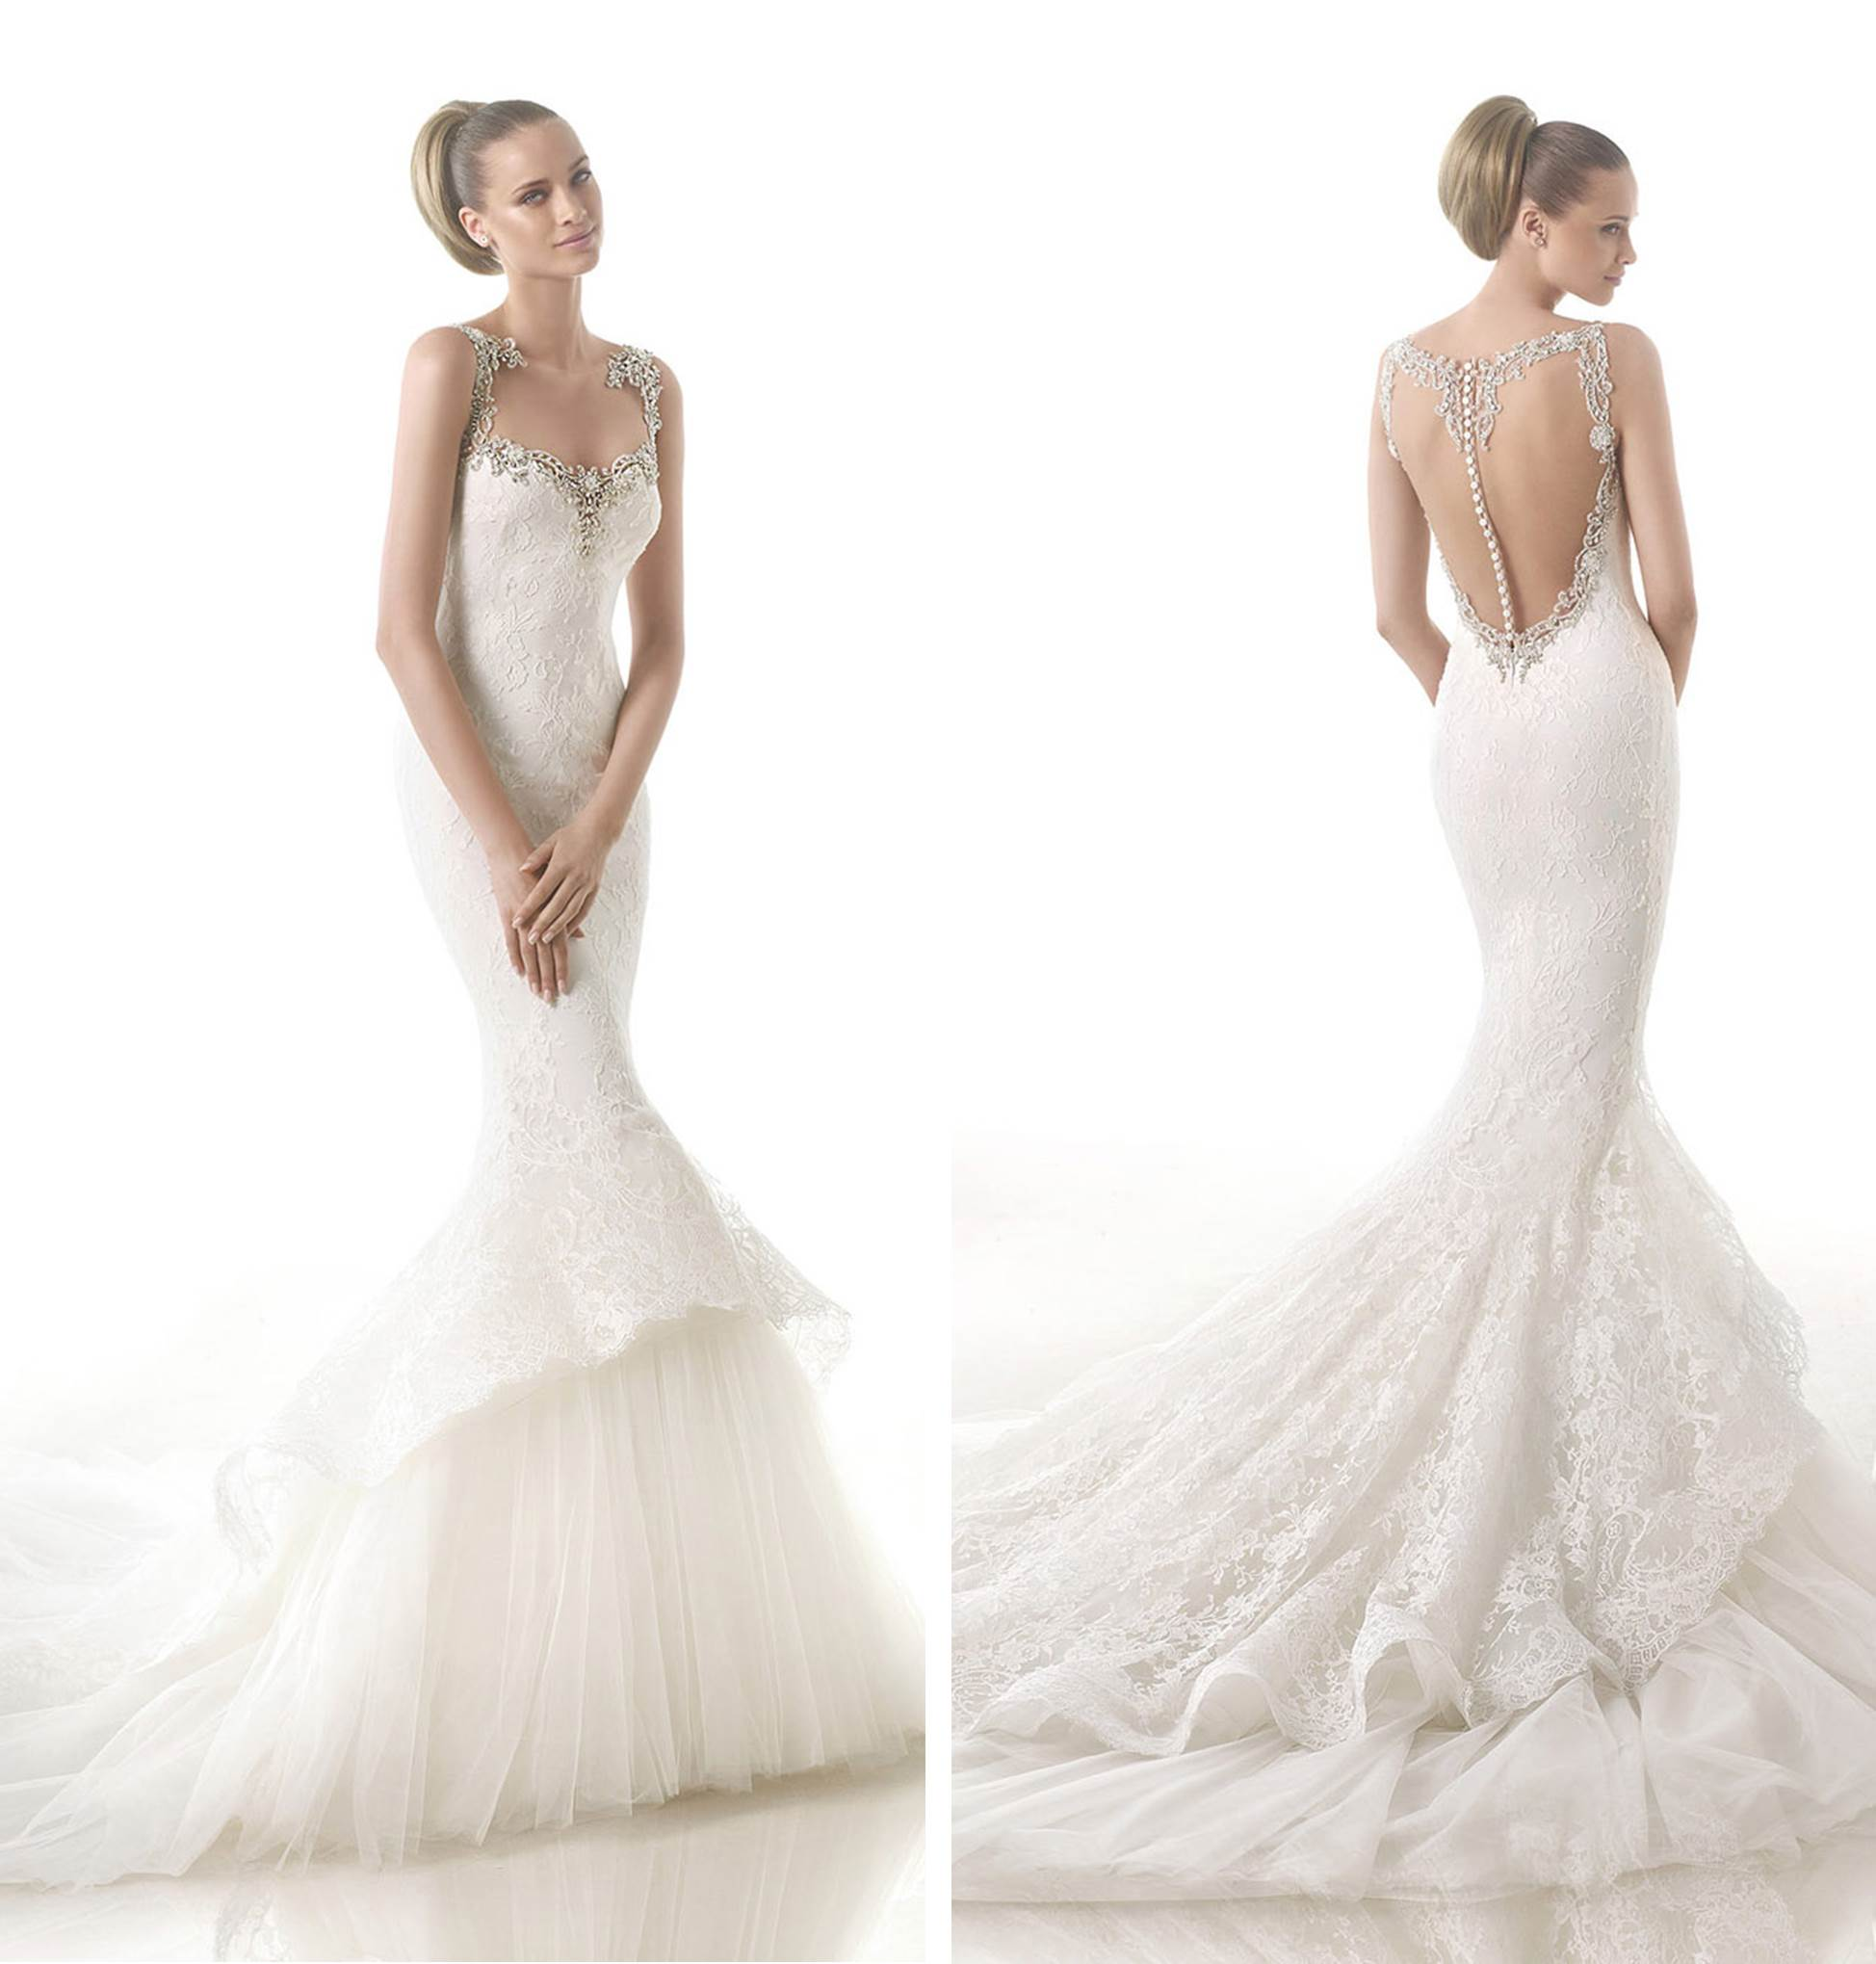 Bride Gowns 2015: Pronovias 2015 Haute Couture Bridal Collection